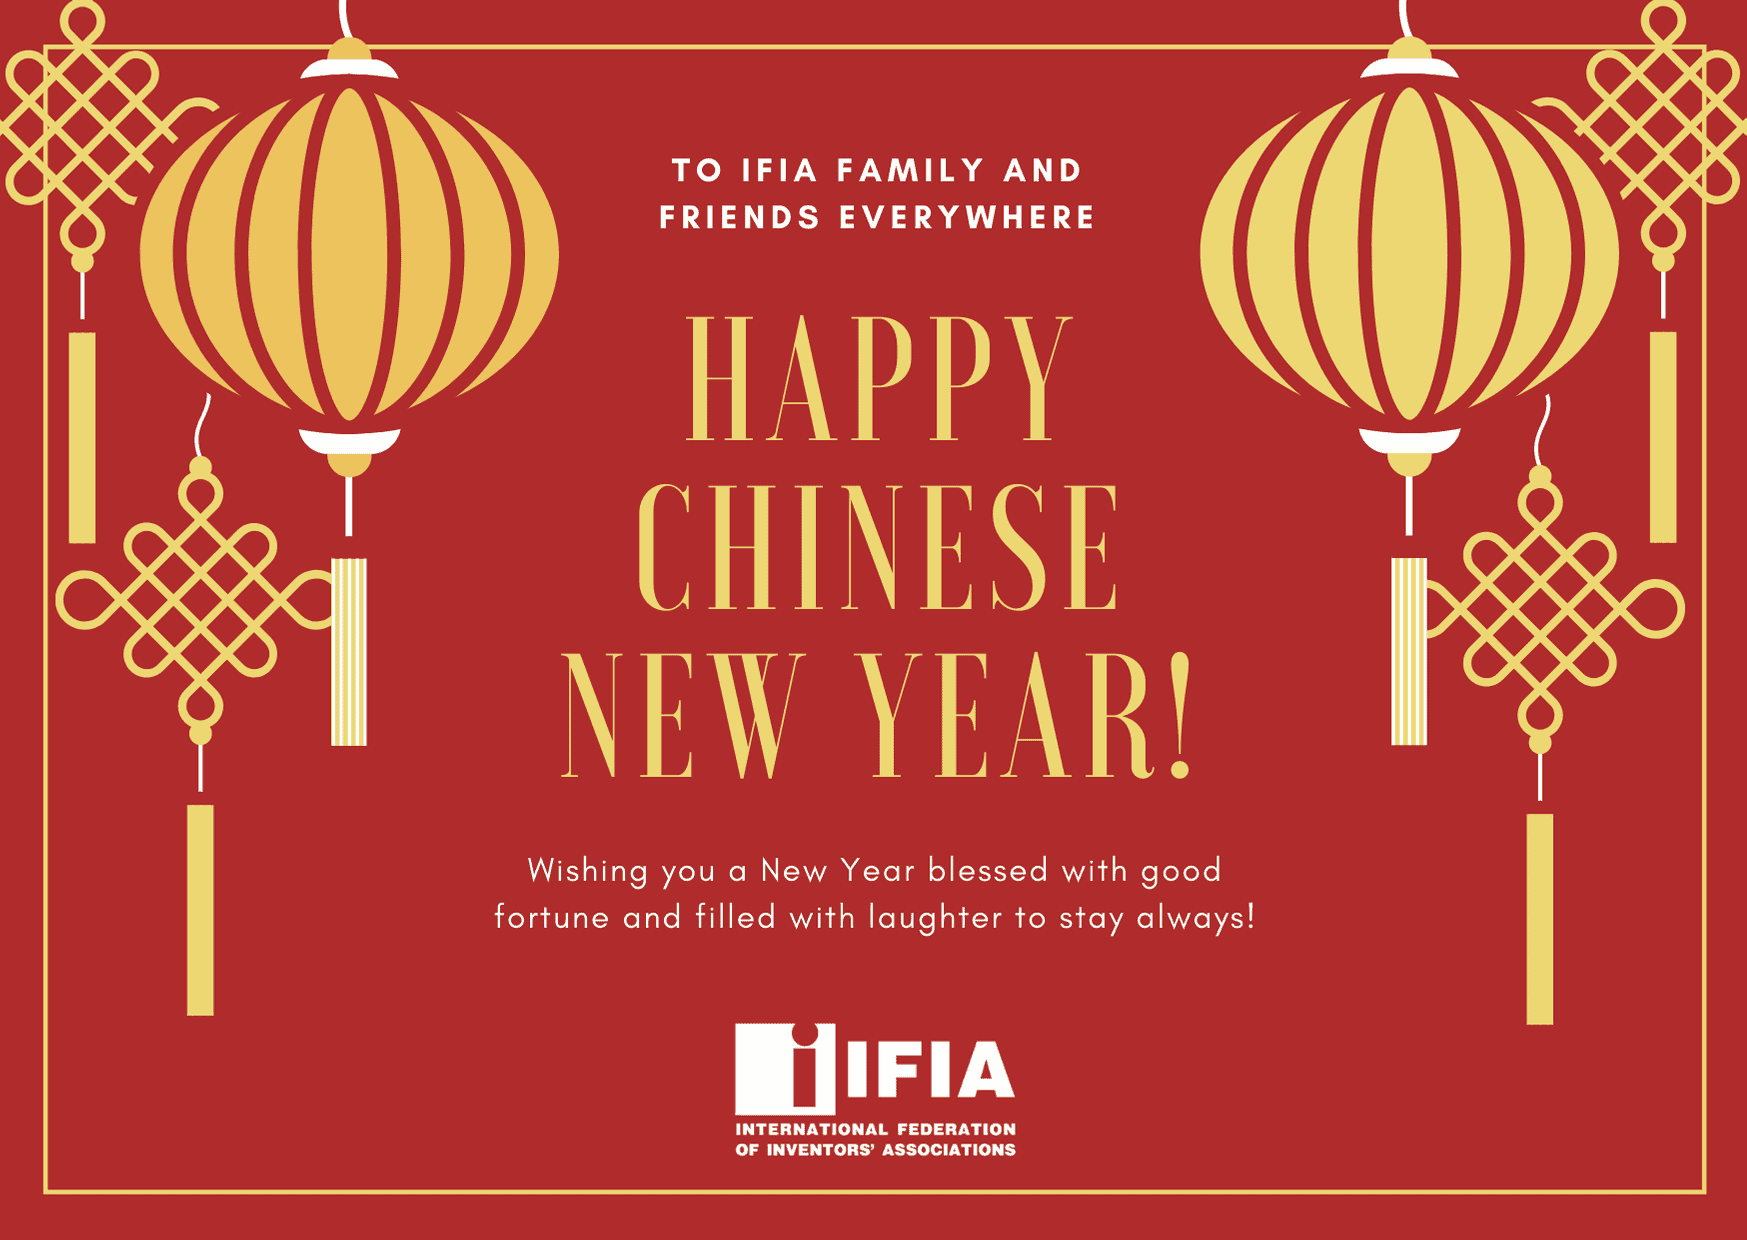 IFIA extends the best wishes on Chinese New Year 2020